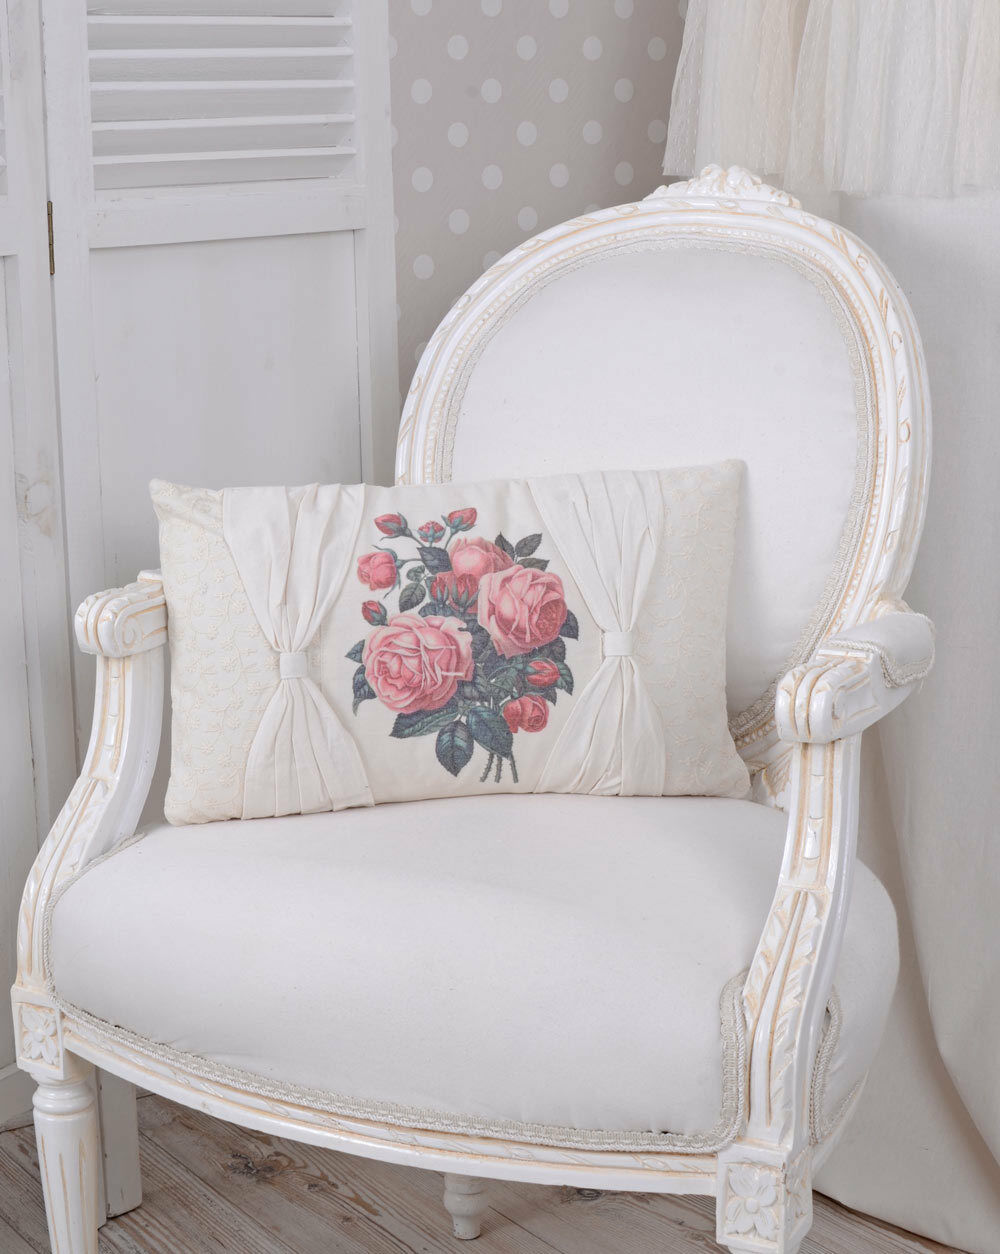 zierkissen weiss kissen shabby chic rosen sofakissen mit f llung eur 17 99 picclick de. Black Bedroom Furniture Sets. Home Design Ideas